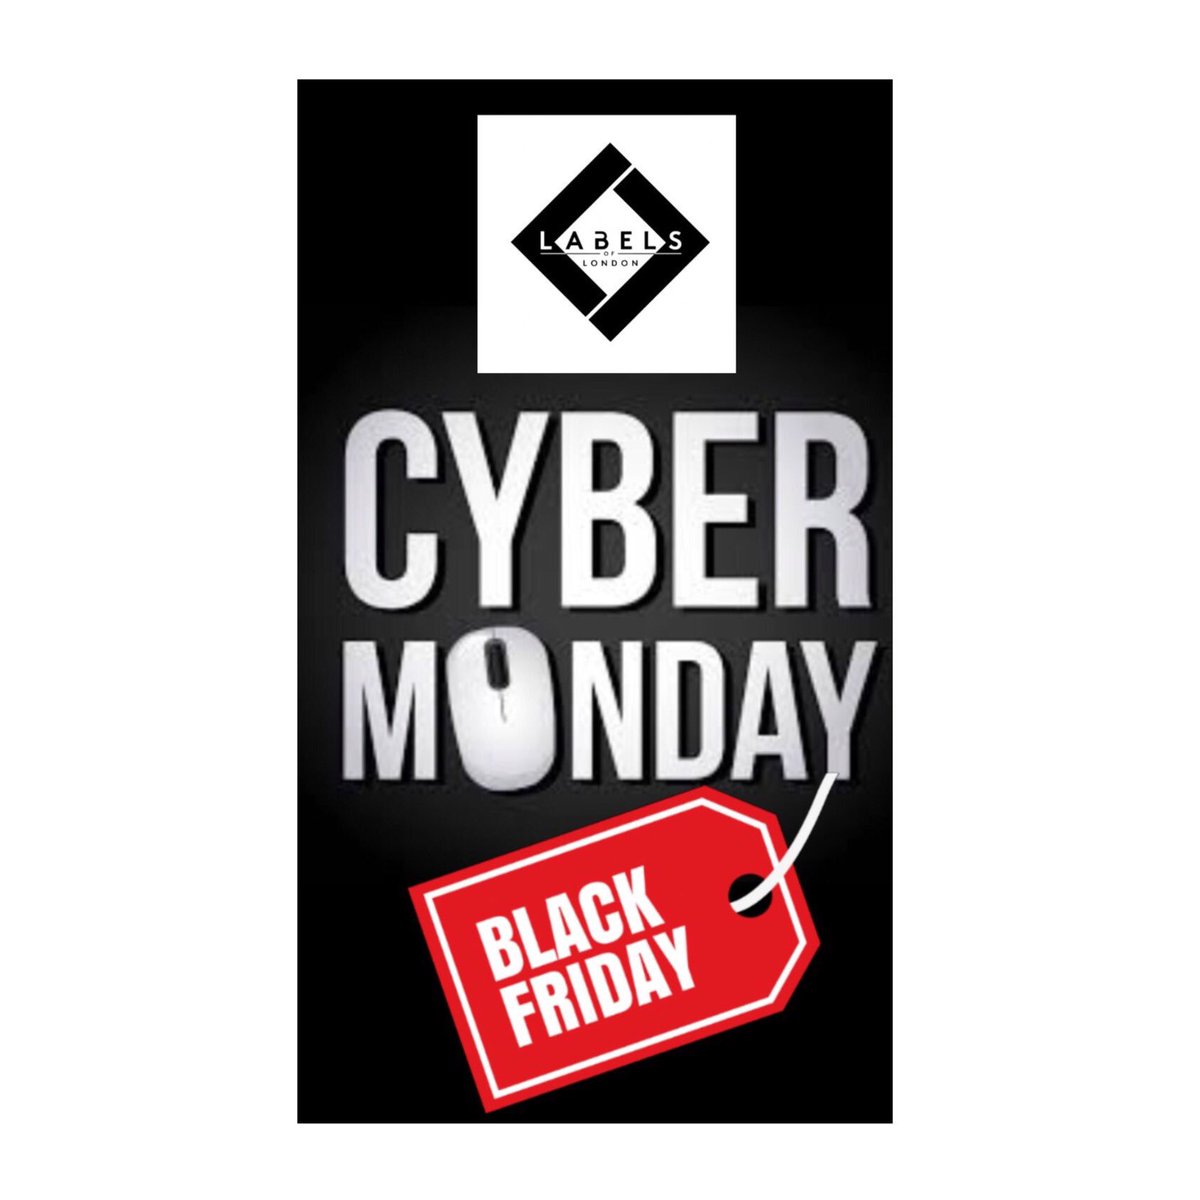 Not long left now until the country goes mad!!  shop till you drop with our amazing discounts for Black Friday/Cyber Monday!! Happy shopping peeps  #labelsoflondonuk #blackfriday #sales #cybermonday #sale #shoptilyoudrop #discounted #discounts #amazingvalue #bargain<br>http://pic.twitter.com/KVSwoVmUAF